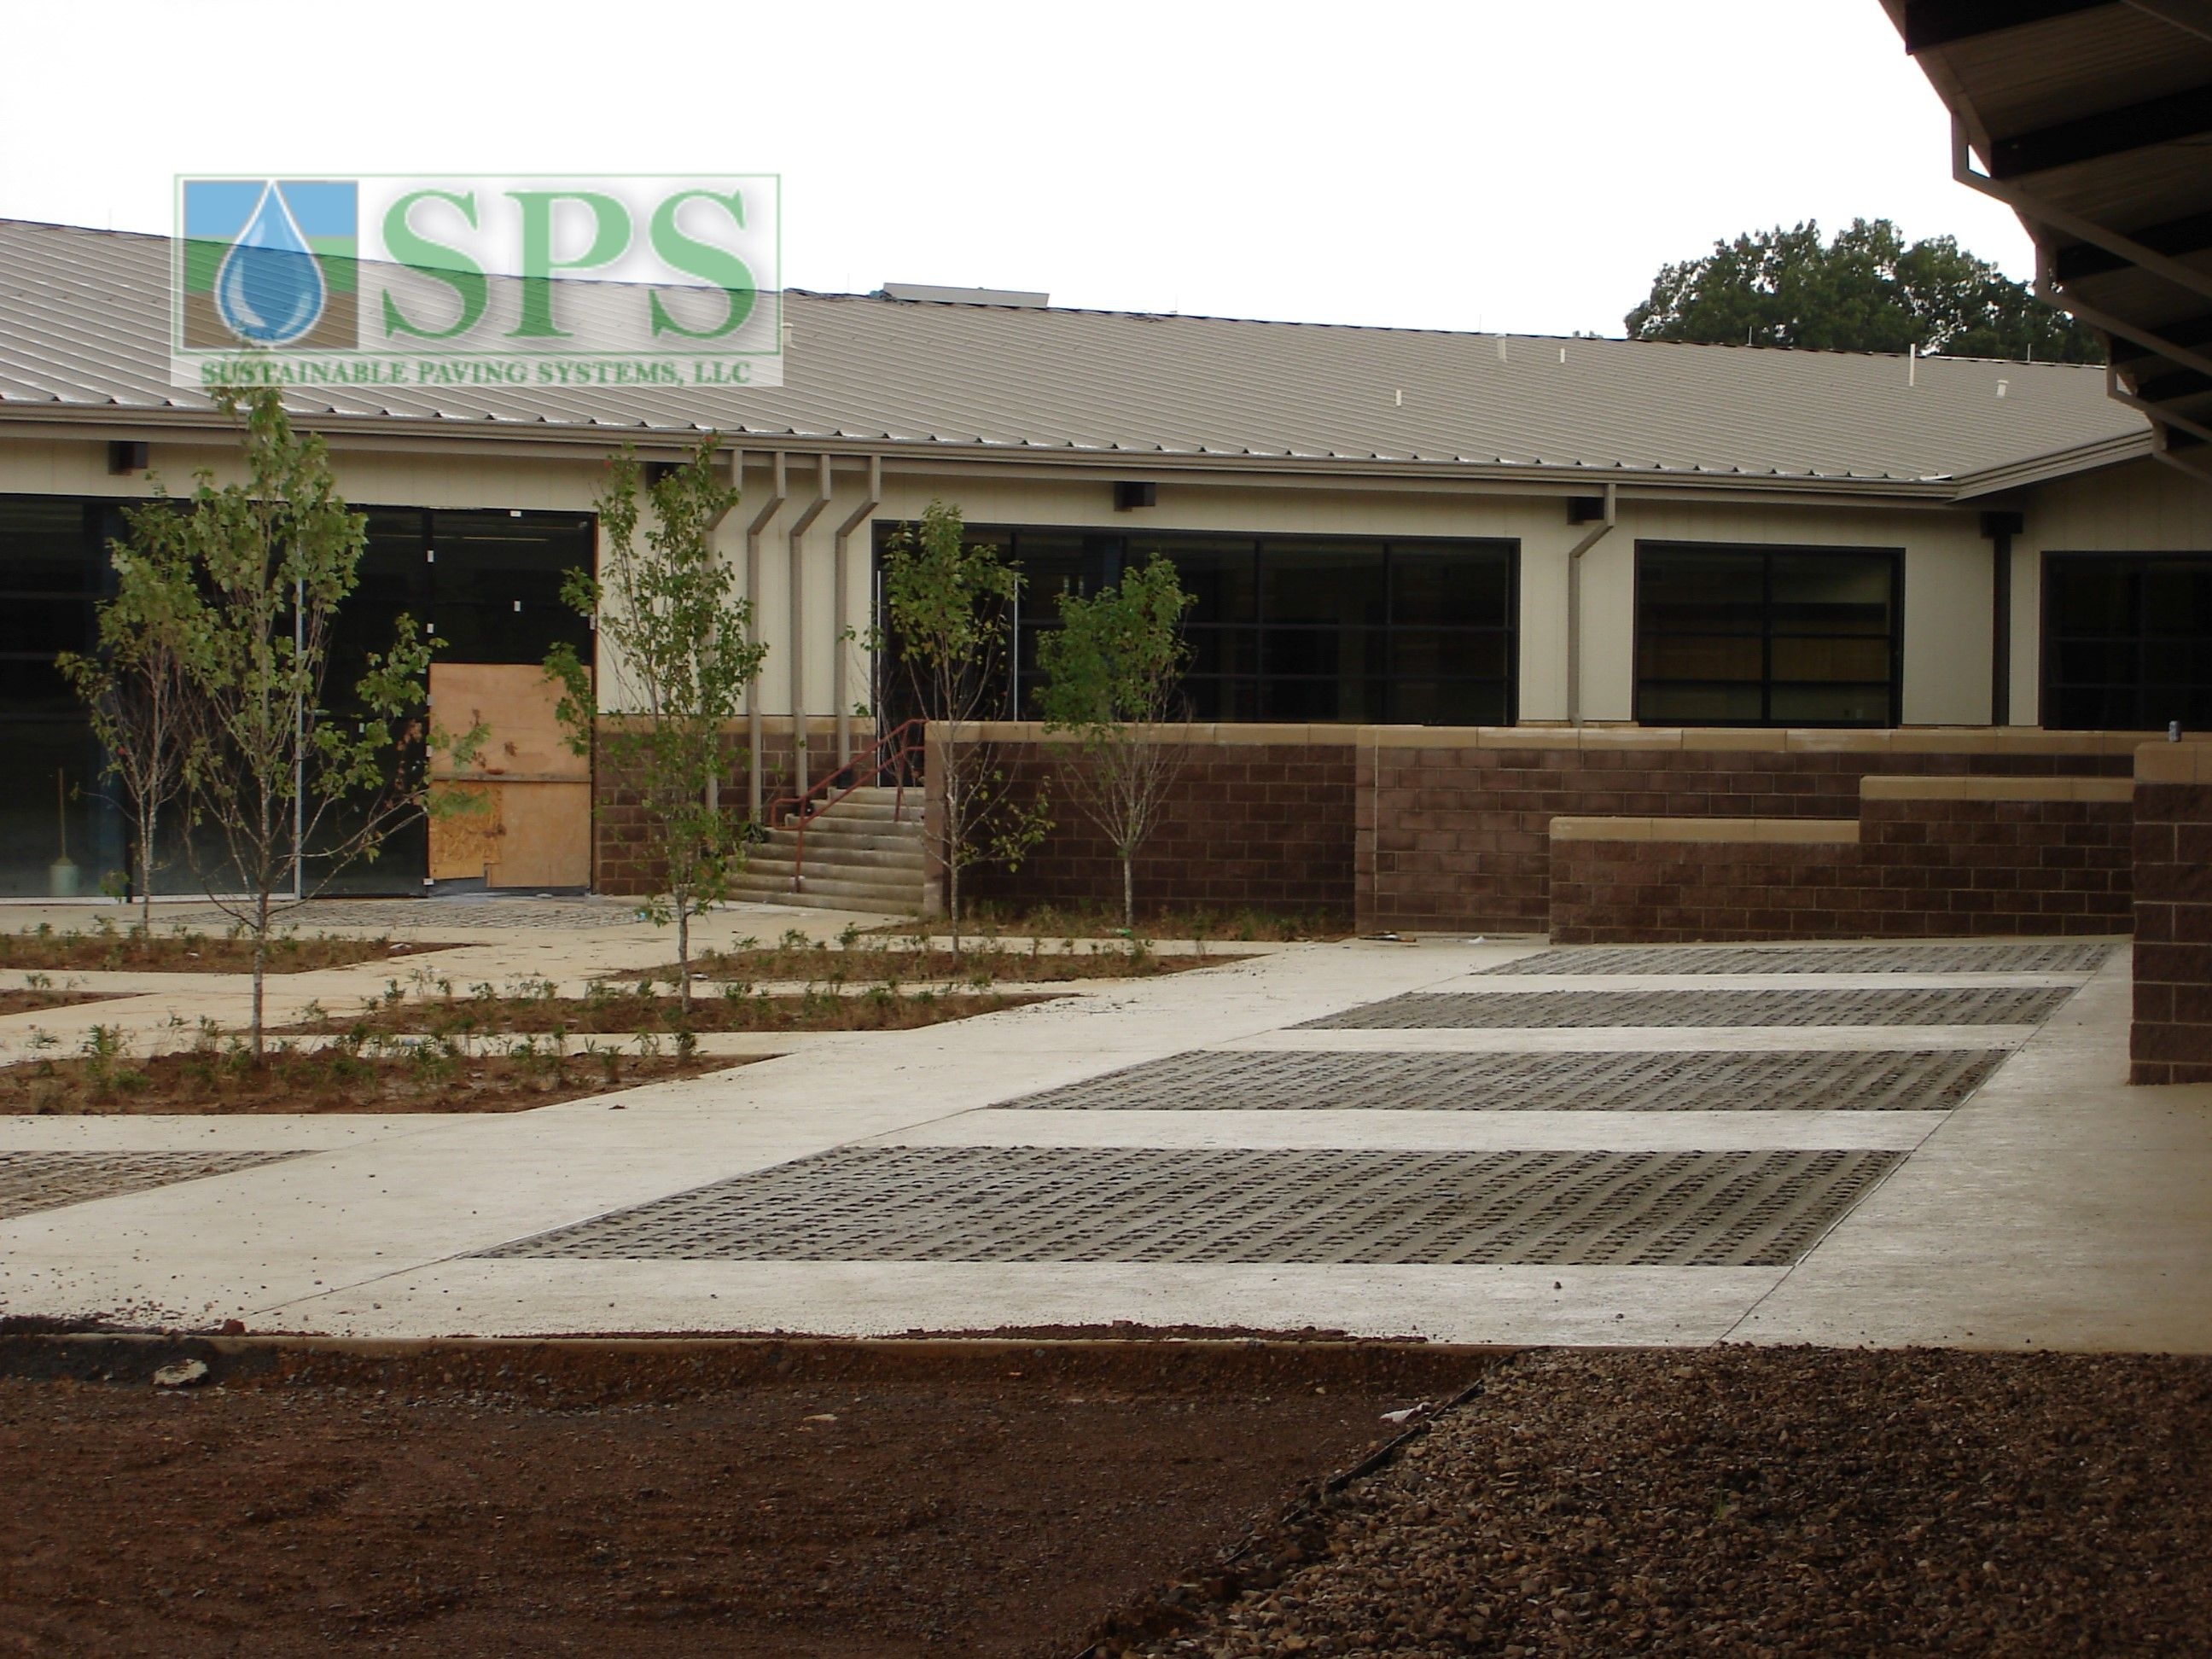 Grasscrete Partially Concealed System At Wooster Elementary View Of Walkways And Play Area_05